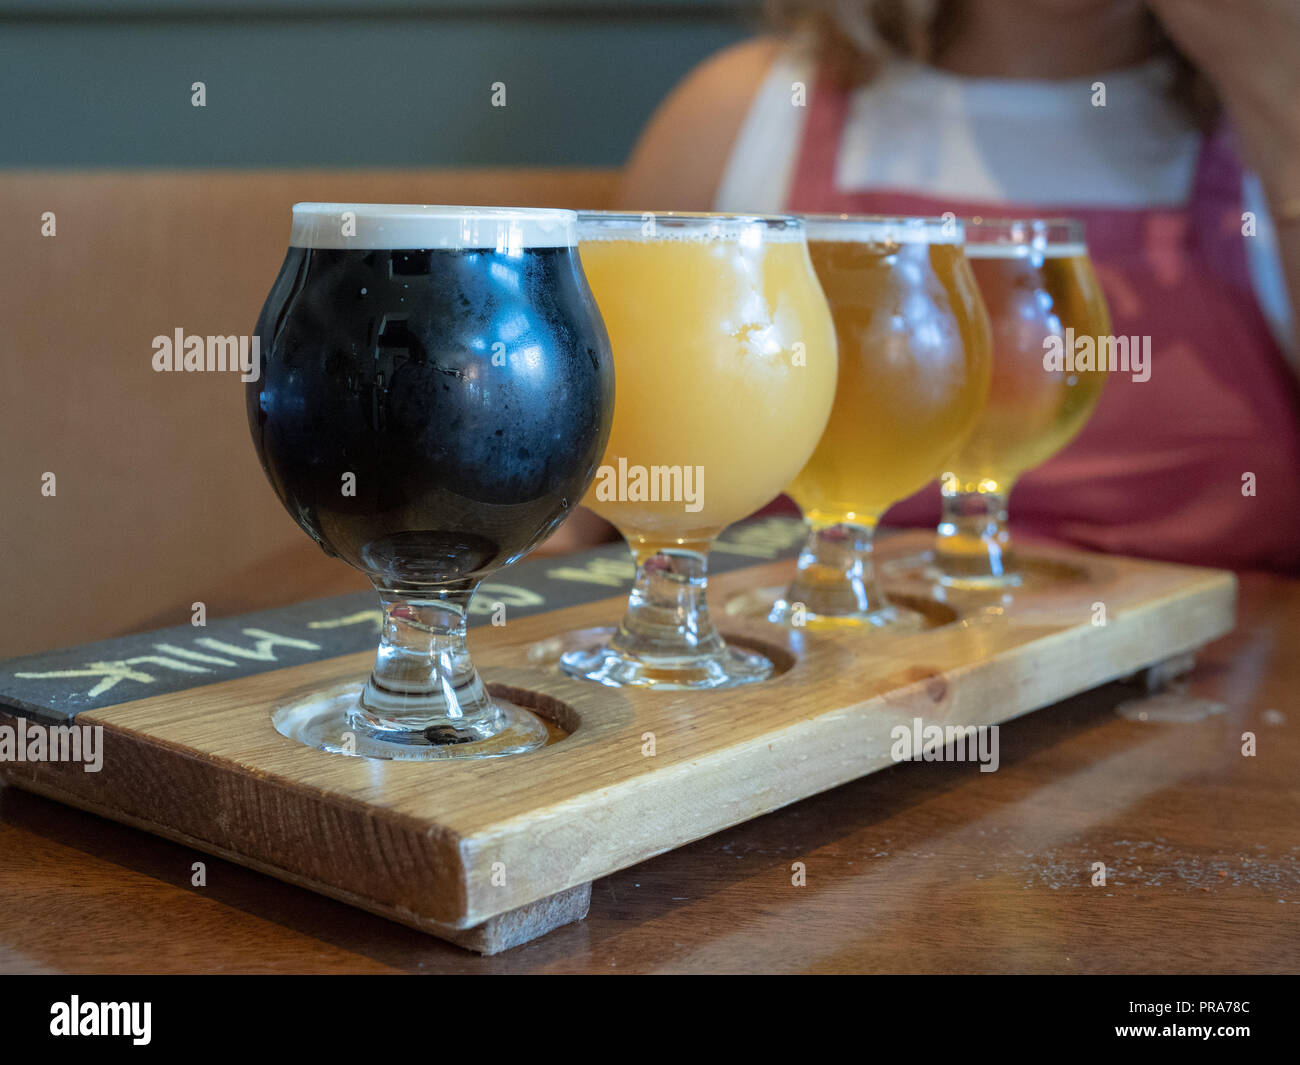 Flight of stout, Amber, IPA beers sitting on wooden paddle  - Stock Image